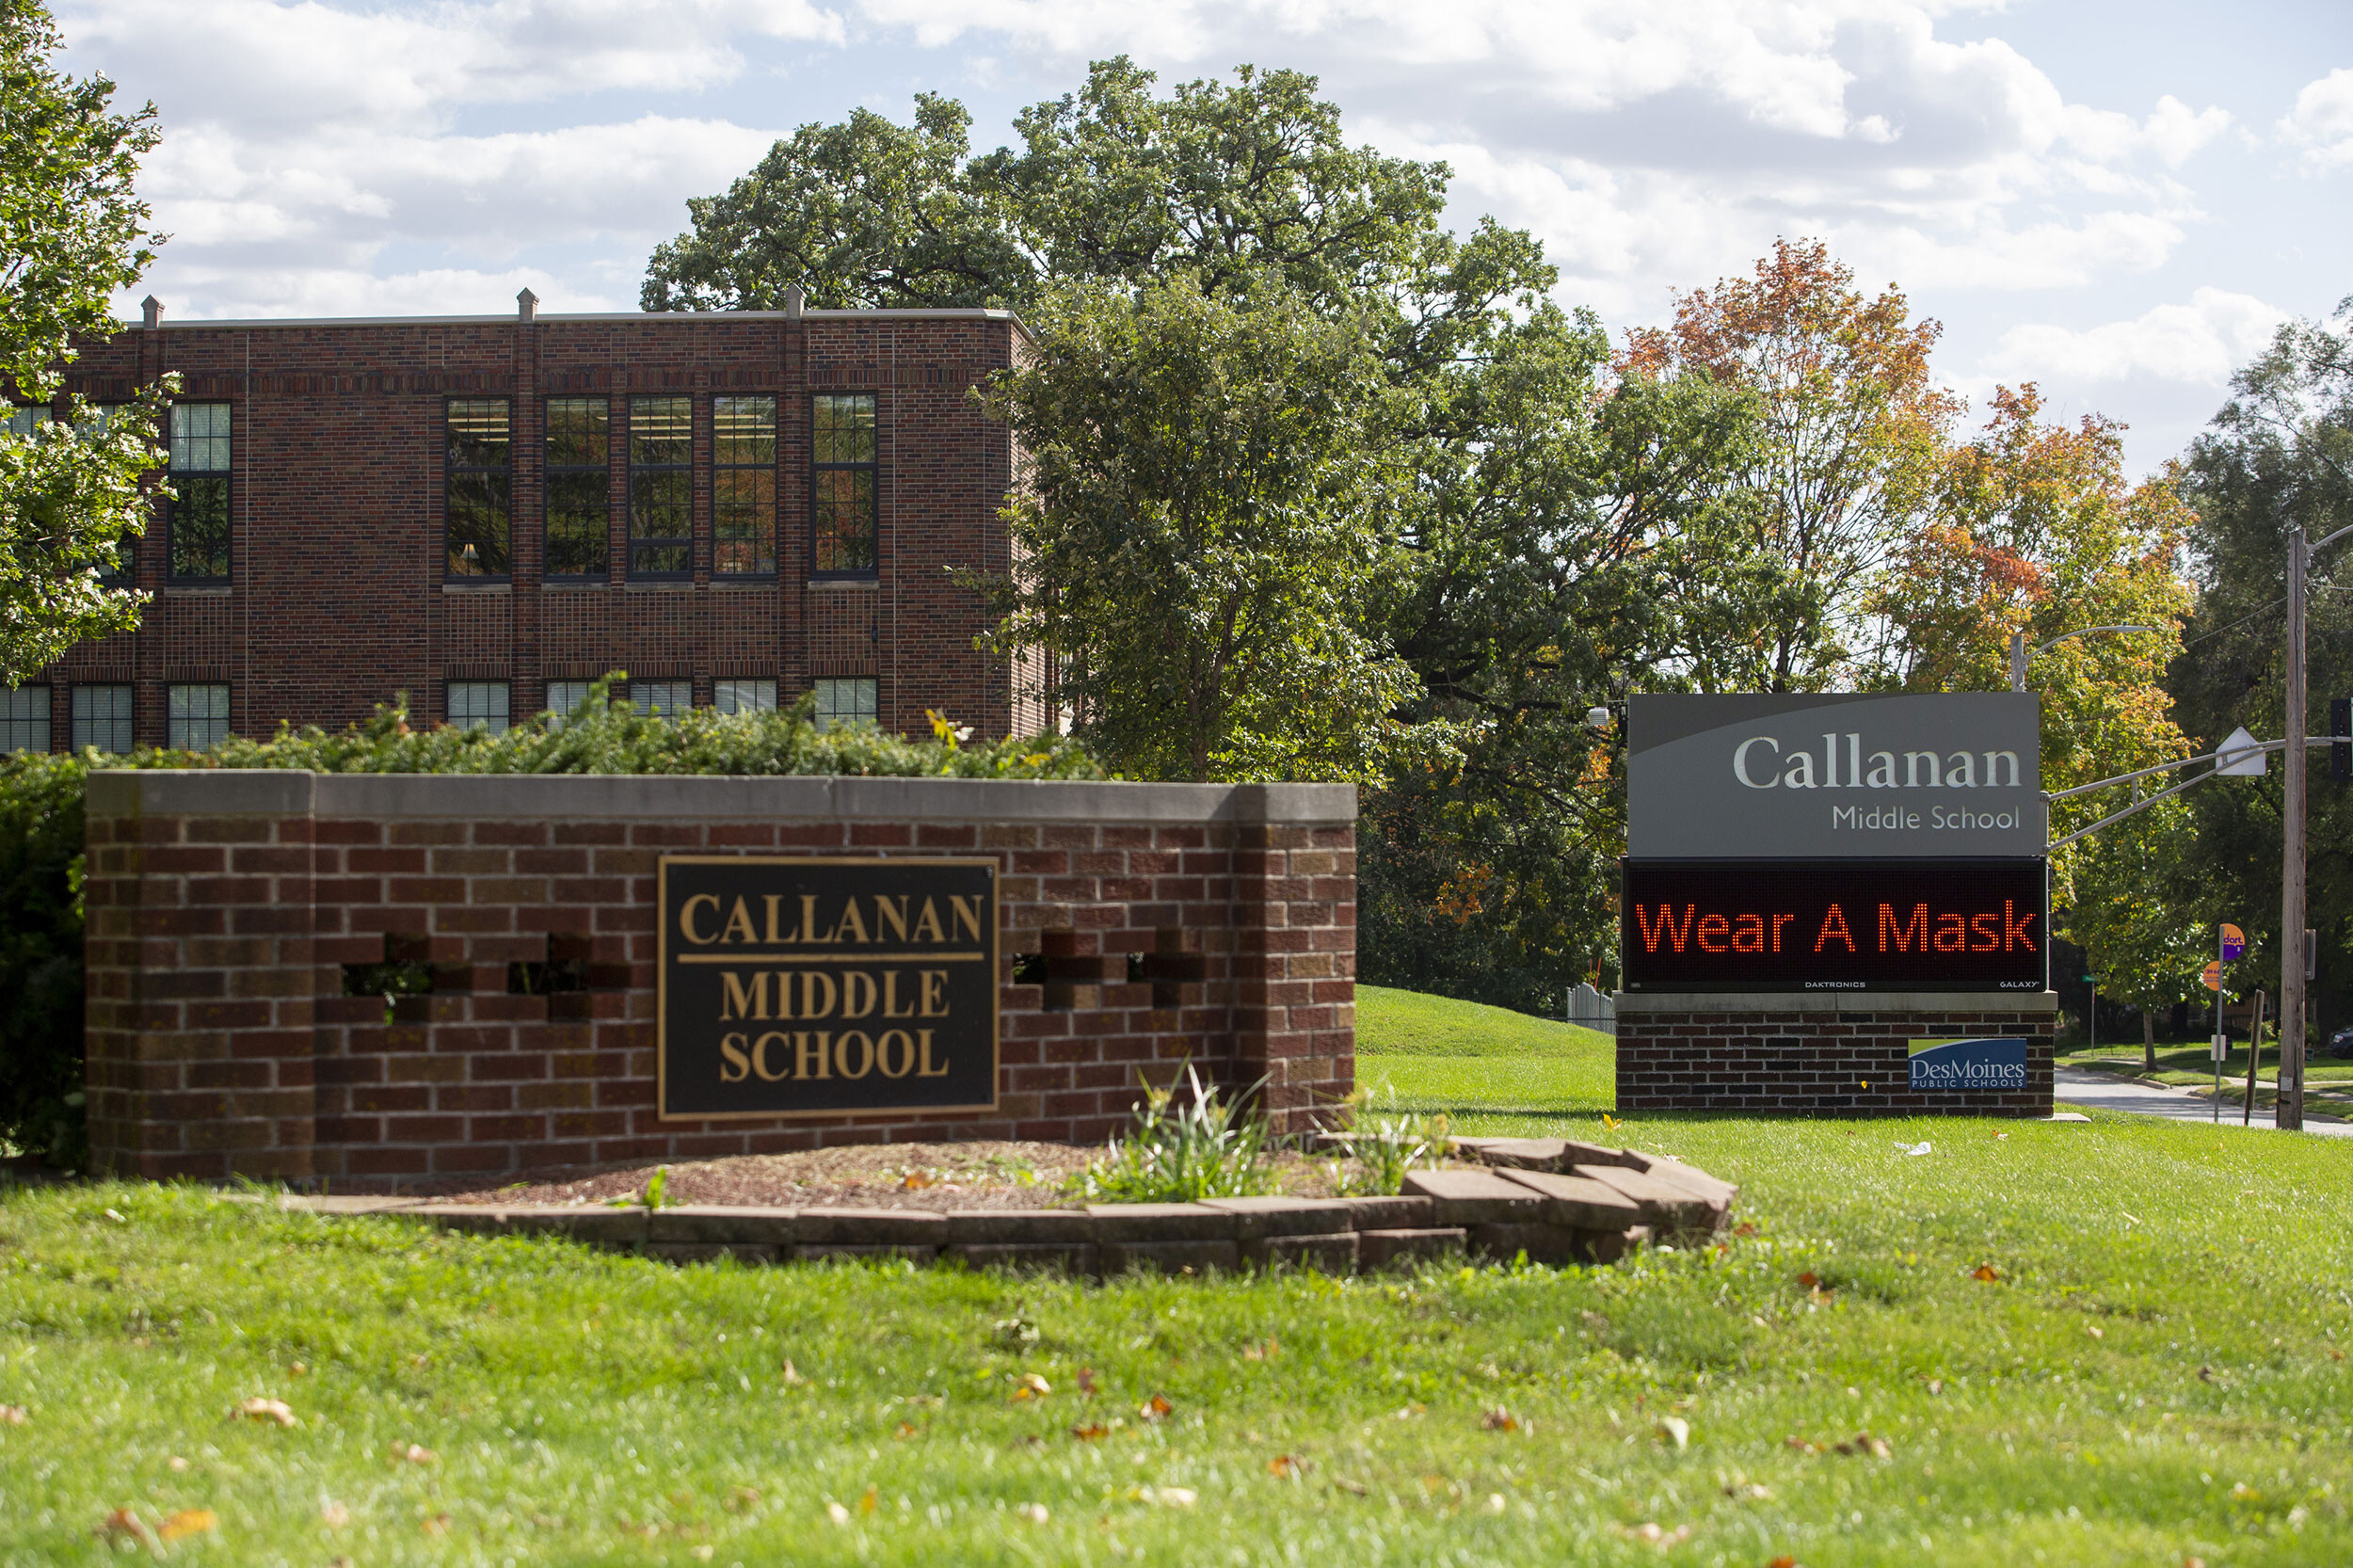 <i>Rachel Mummey/Bloomberg/Getty Images</i><br/>Des Moines Public Schools officials will reinstate the district's mask mandate Wednesday. A sign reminds people to wear a mask outside Callanan Middle School in Des Moines